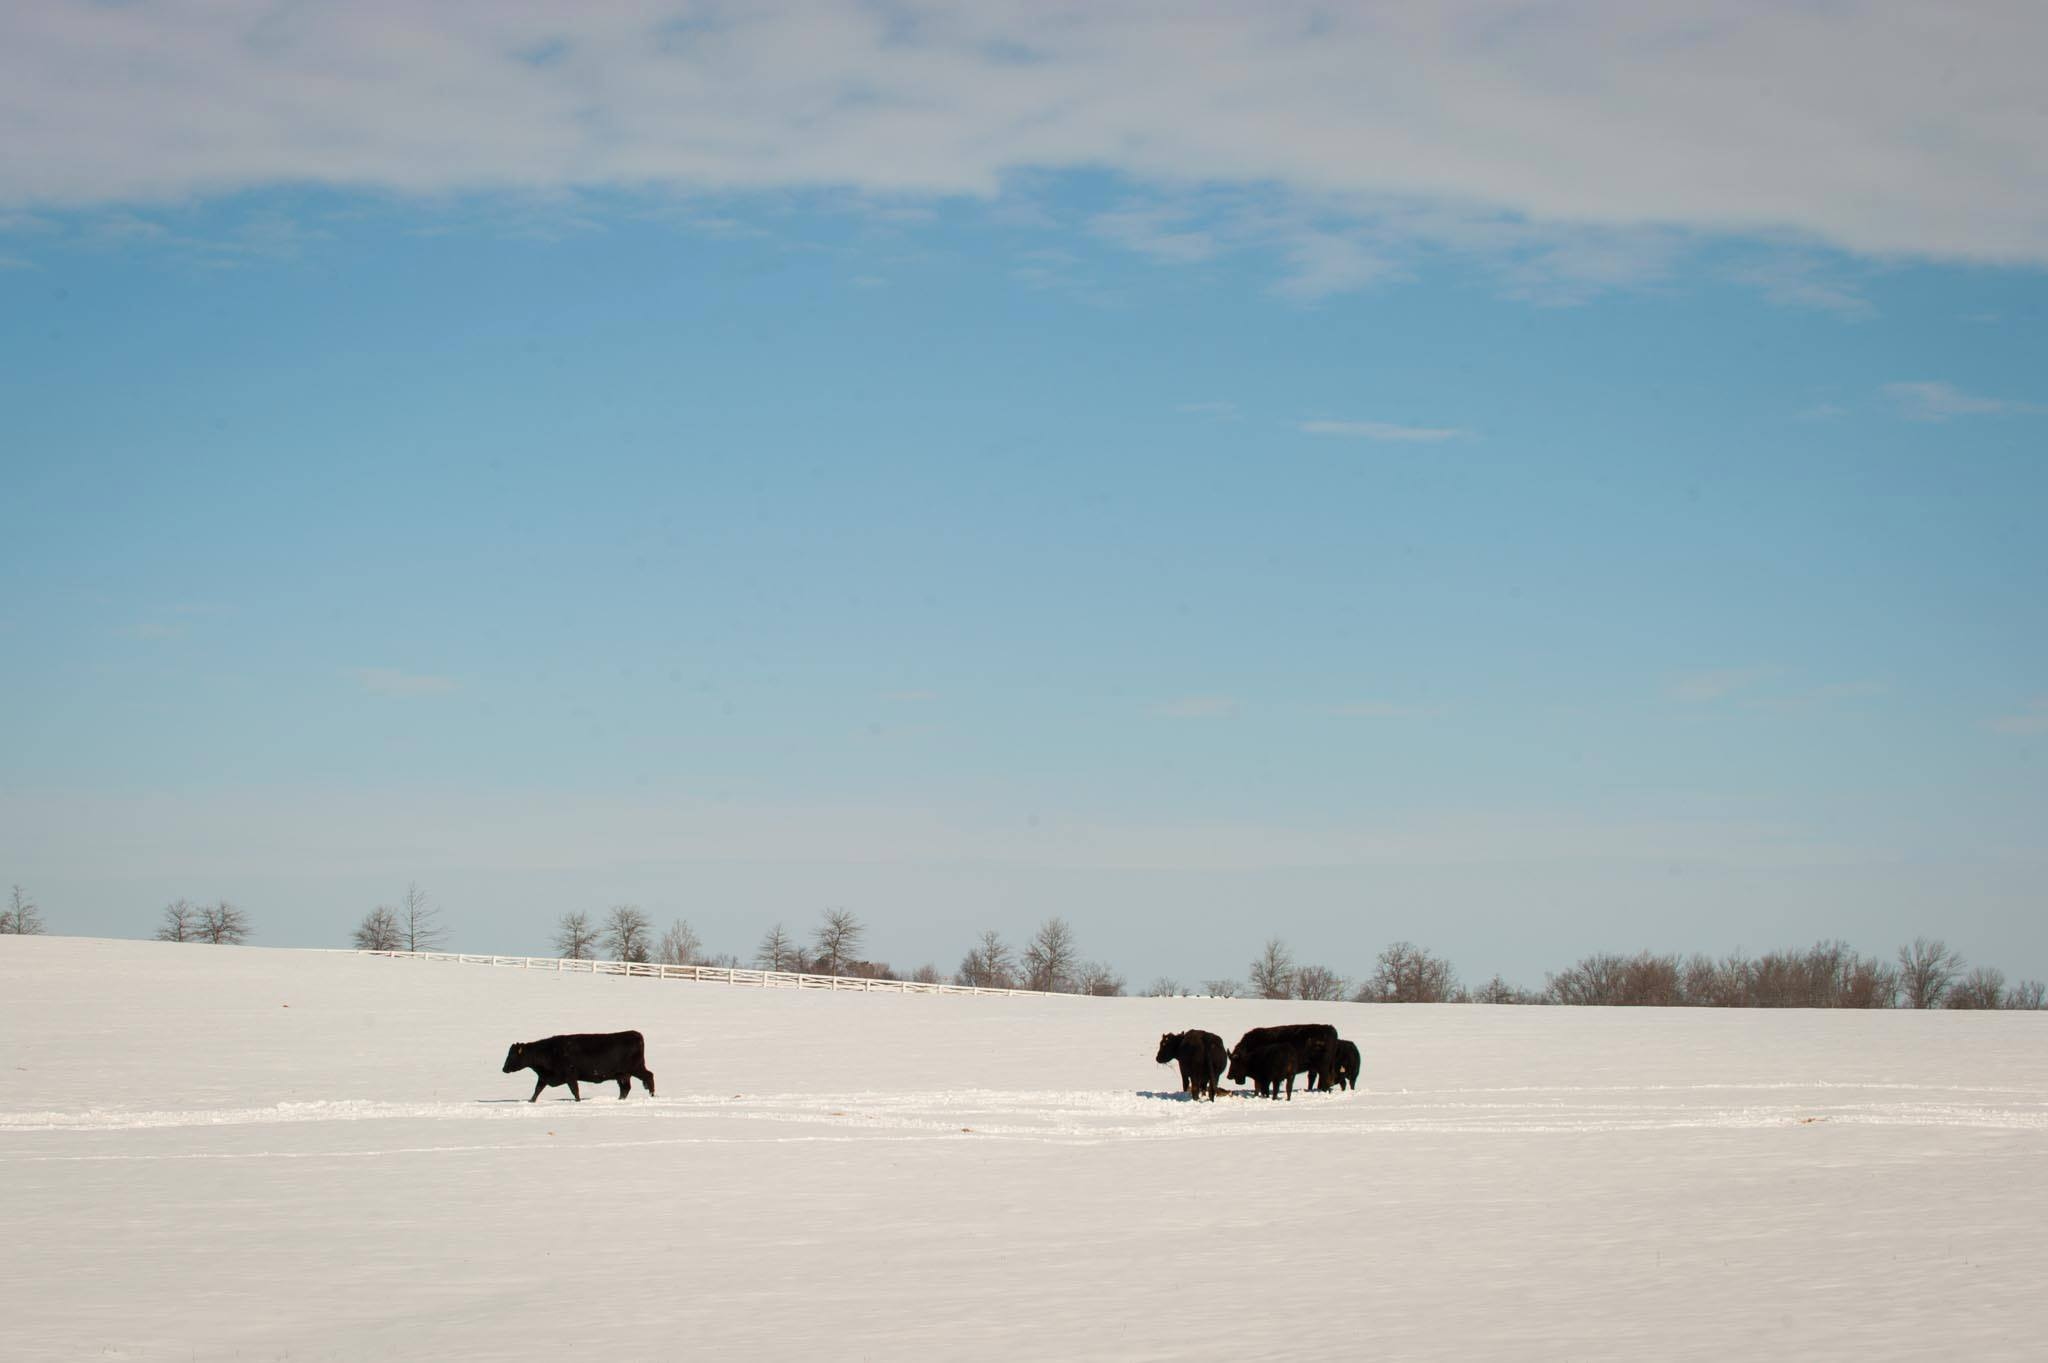 Farmers facing snow and ice storms' impact on cattle